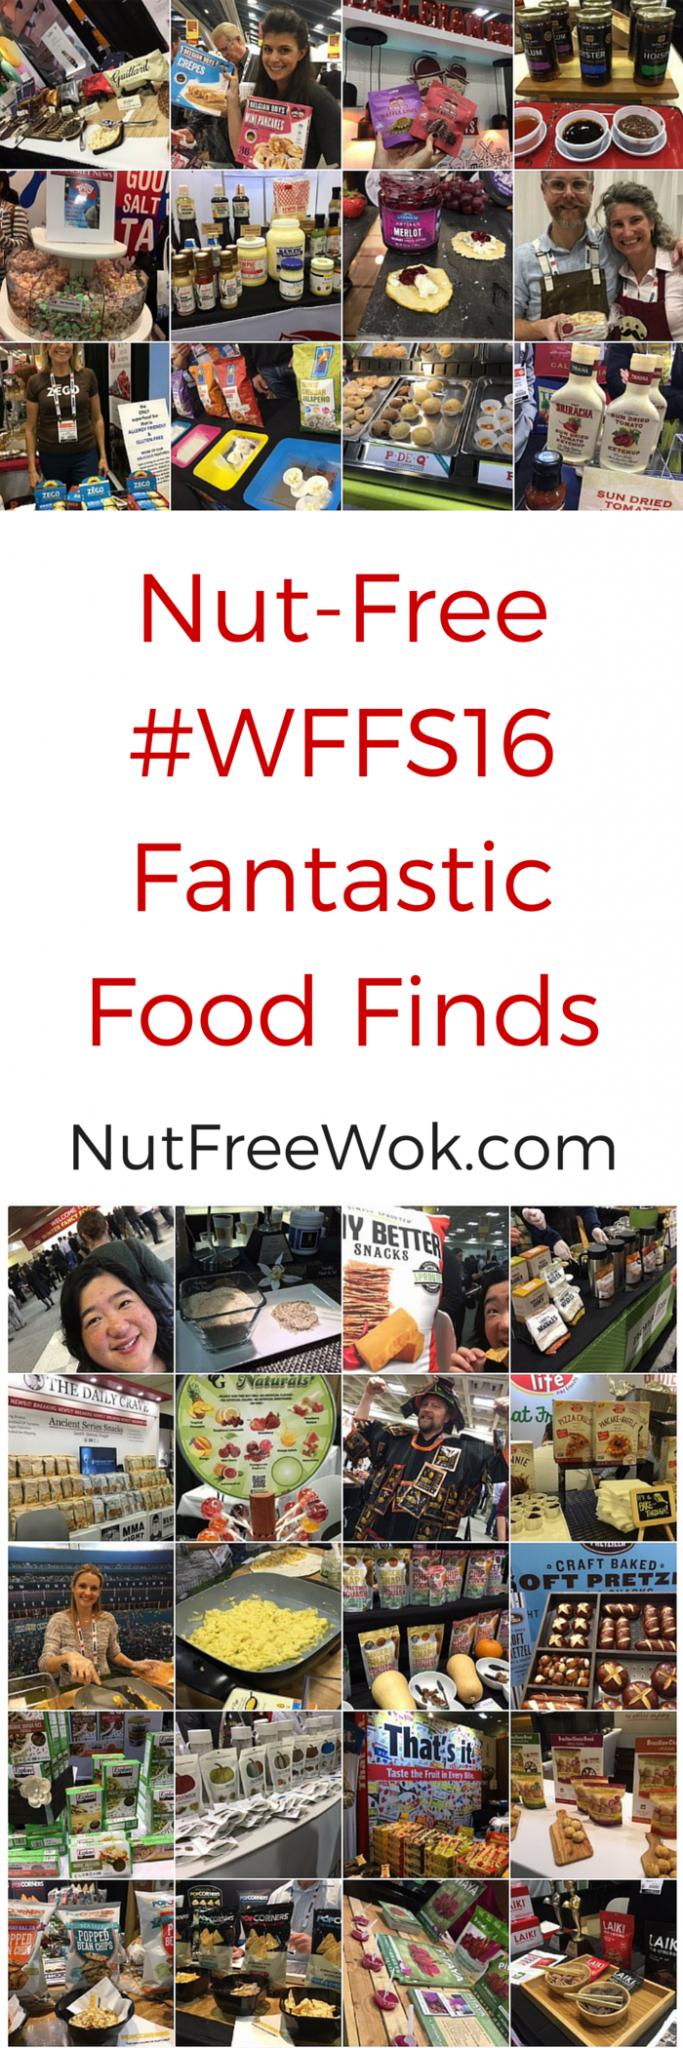 Nut-Free #WFFS16 Fantastic Food Finds nutfreewok.com